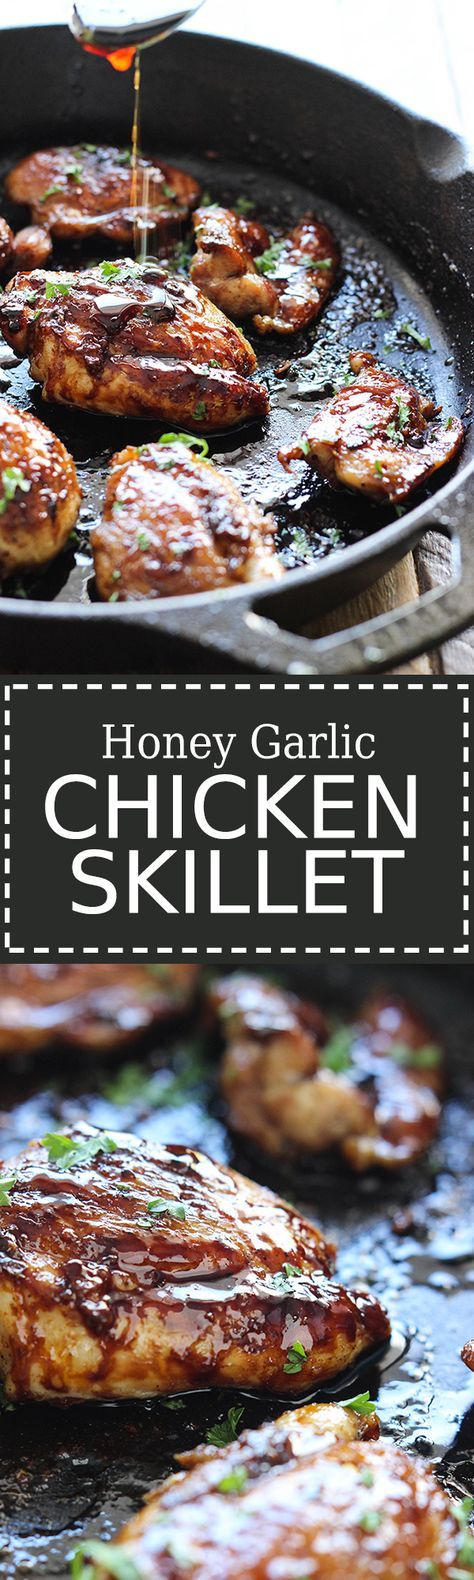 Five ingredients and 20 minutes is all it takes to enjoy this honey garlic chicken skillet. With the much loved sauce that won over kitchens everywhere.